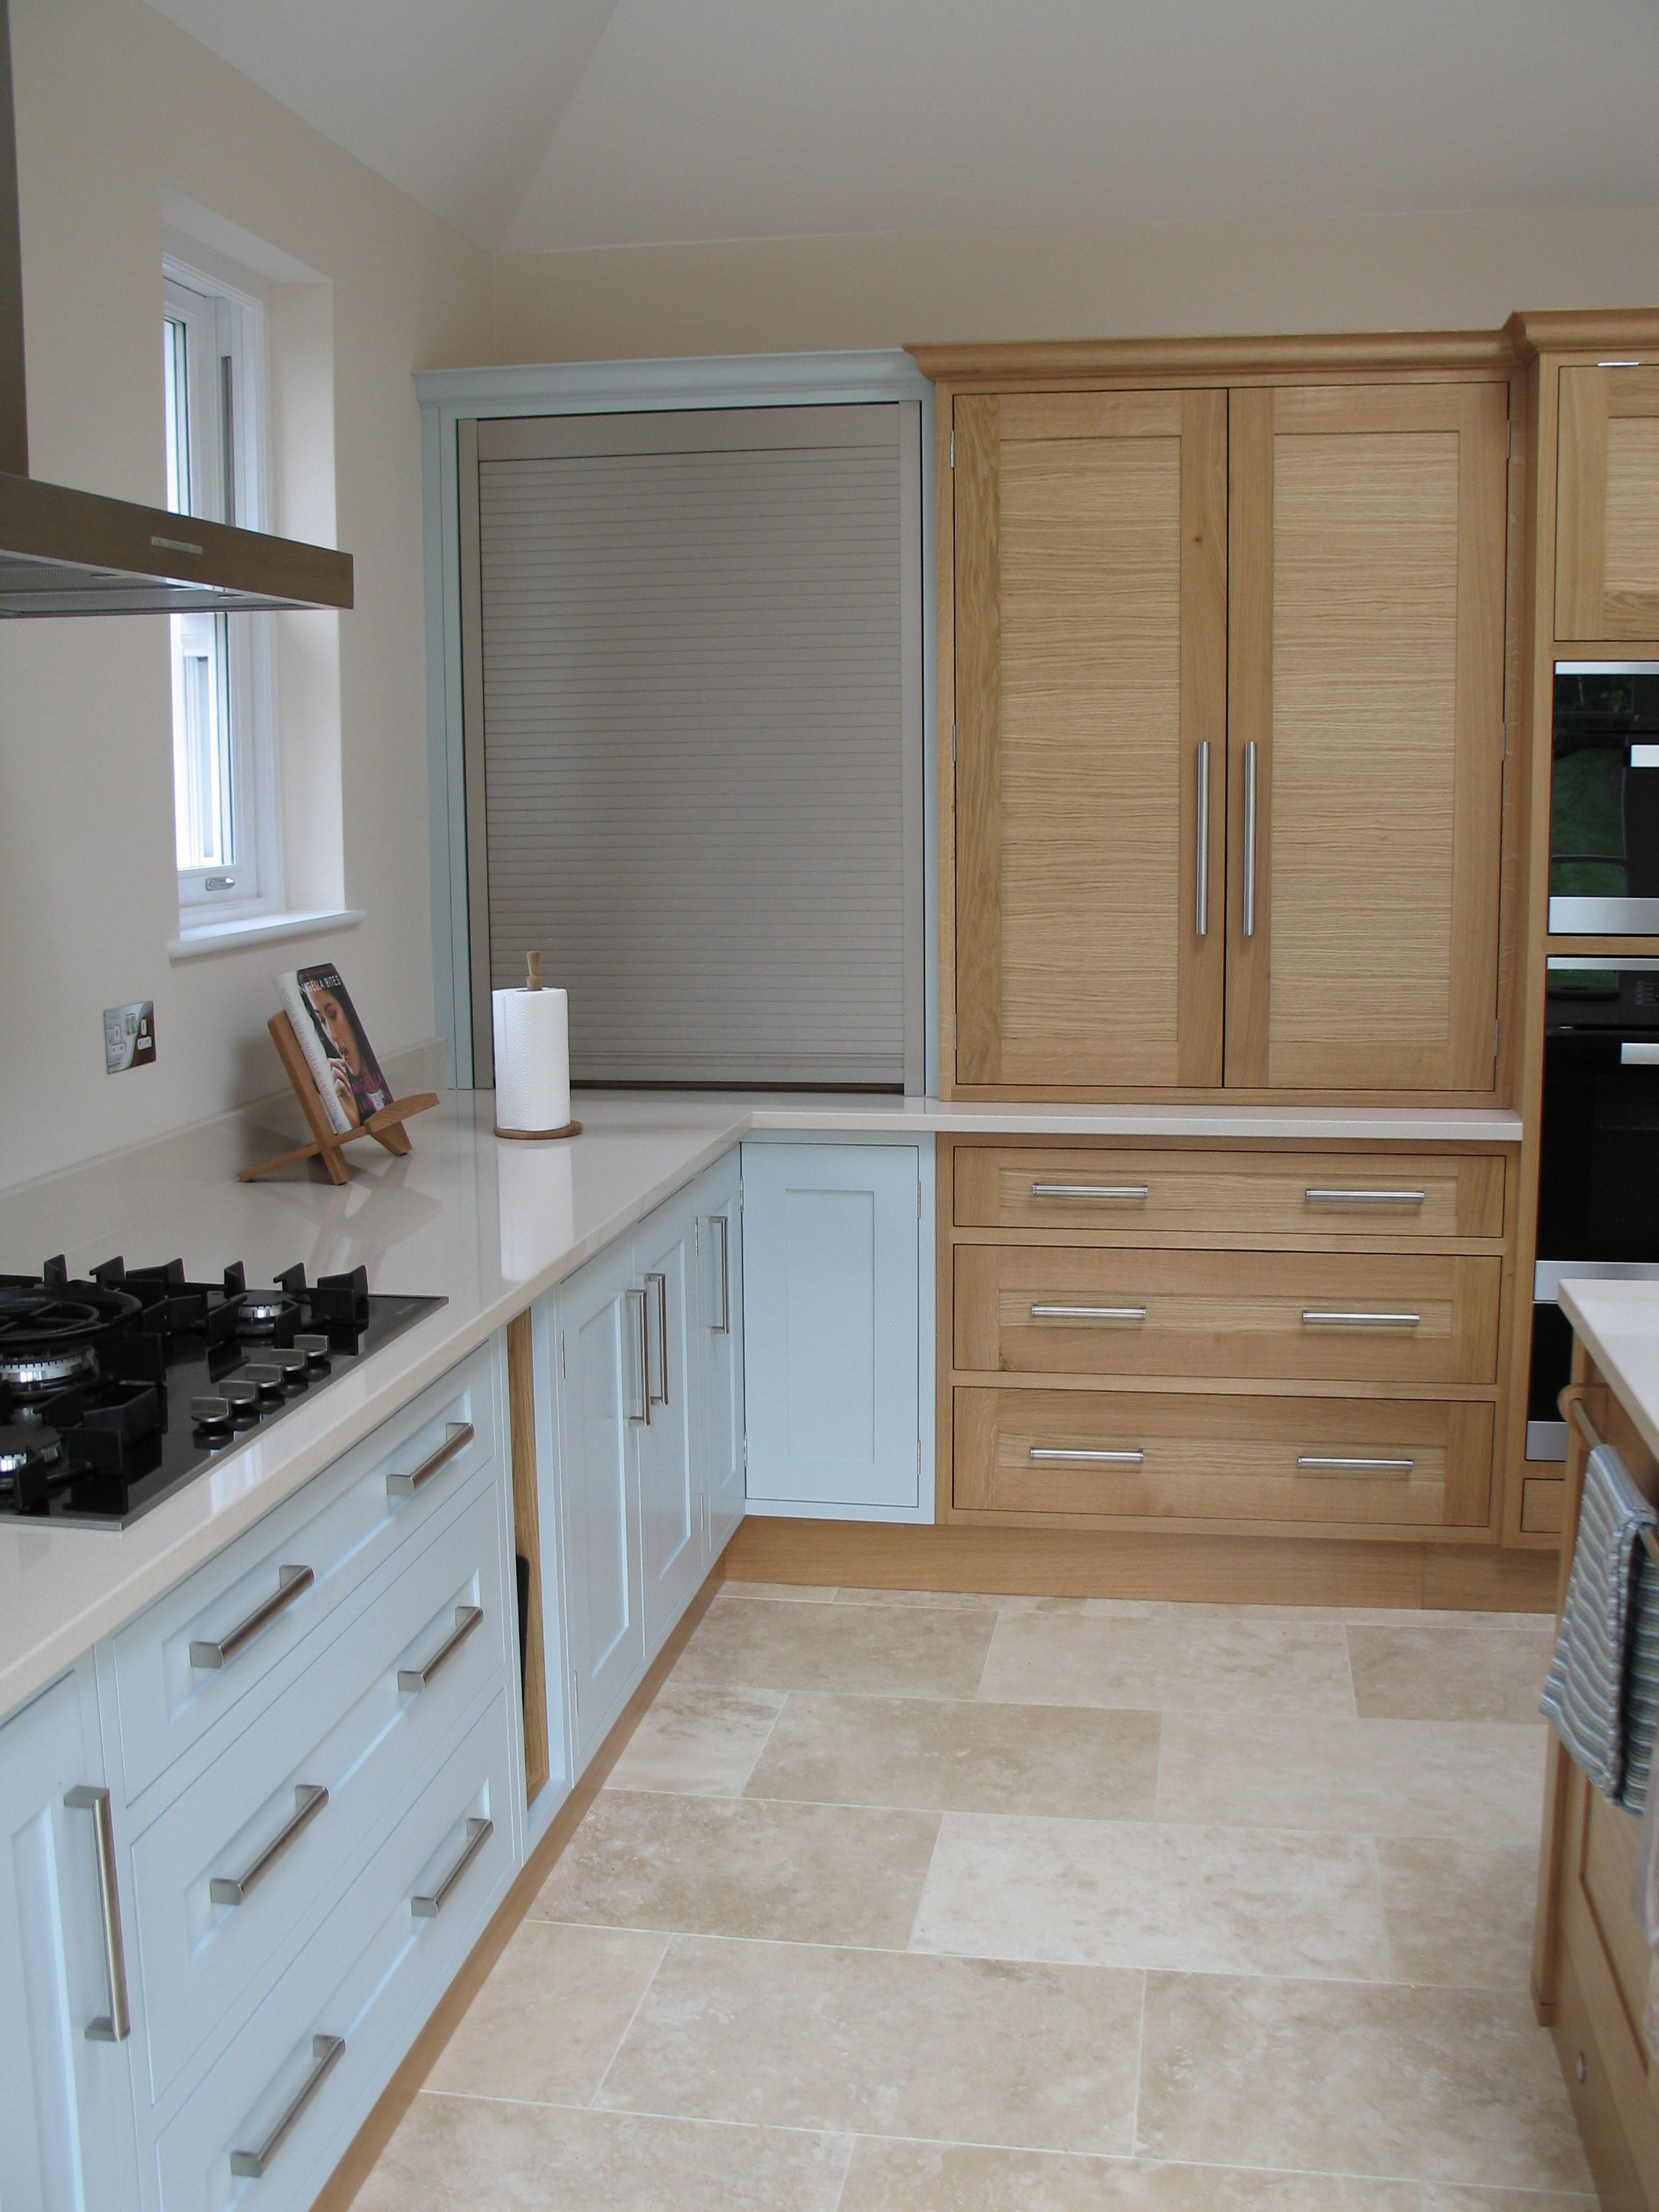 A Stainless Steel Tambour Door In The Corner Next To A Counter Top